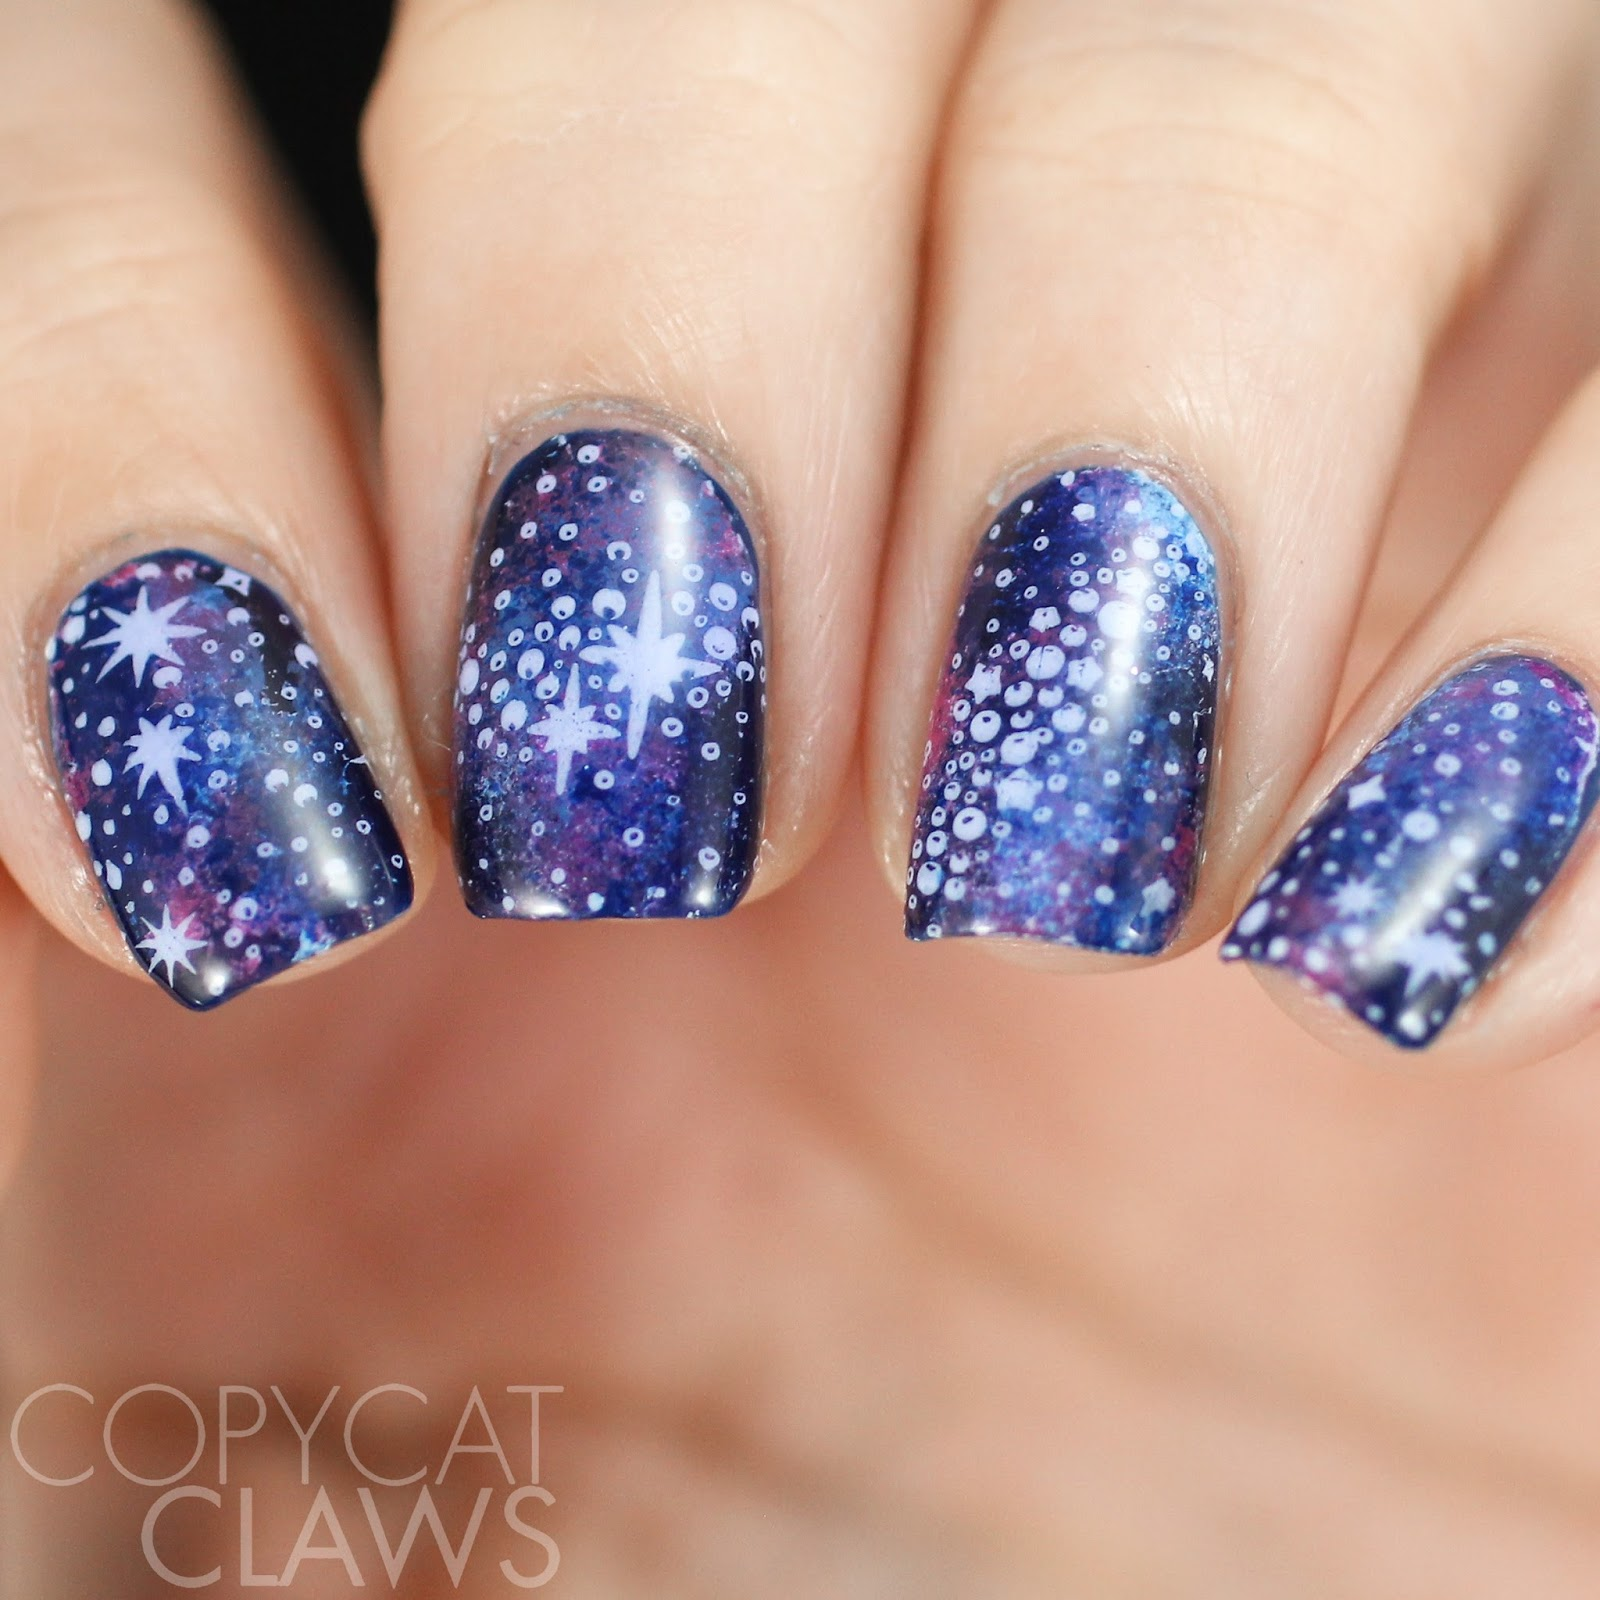 Copycat Claws: Bundle Monster Galaxy Stamping